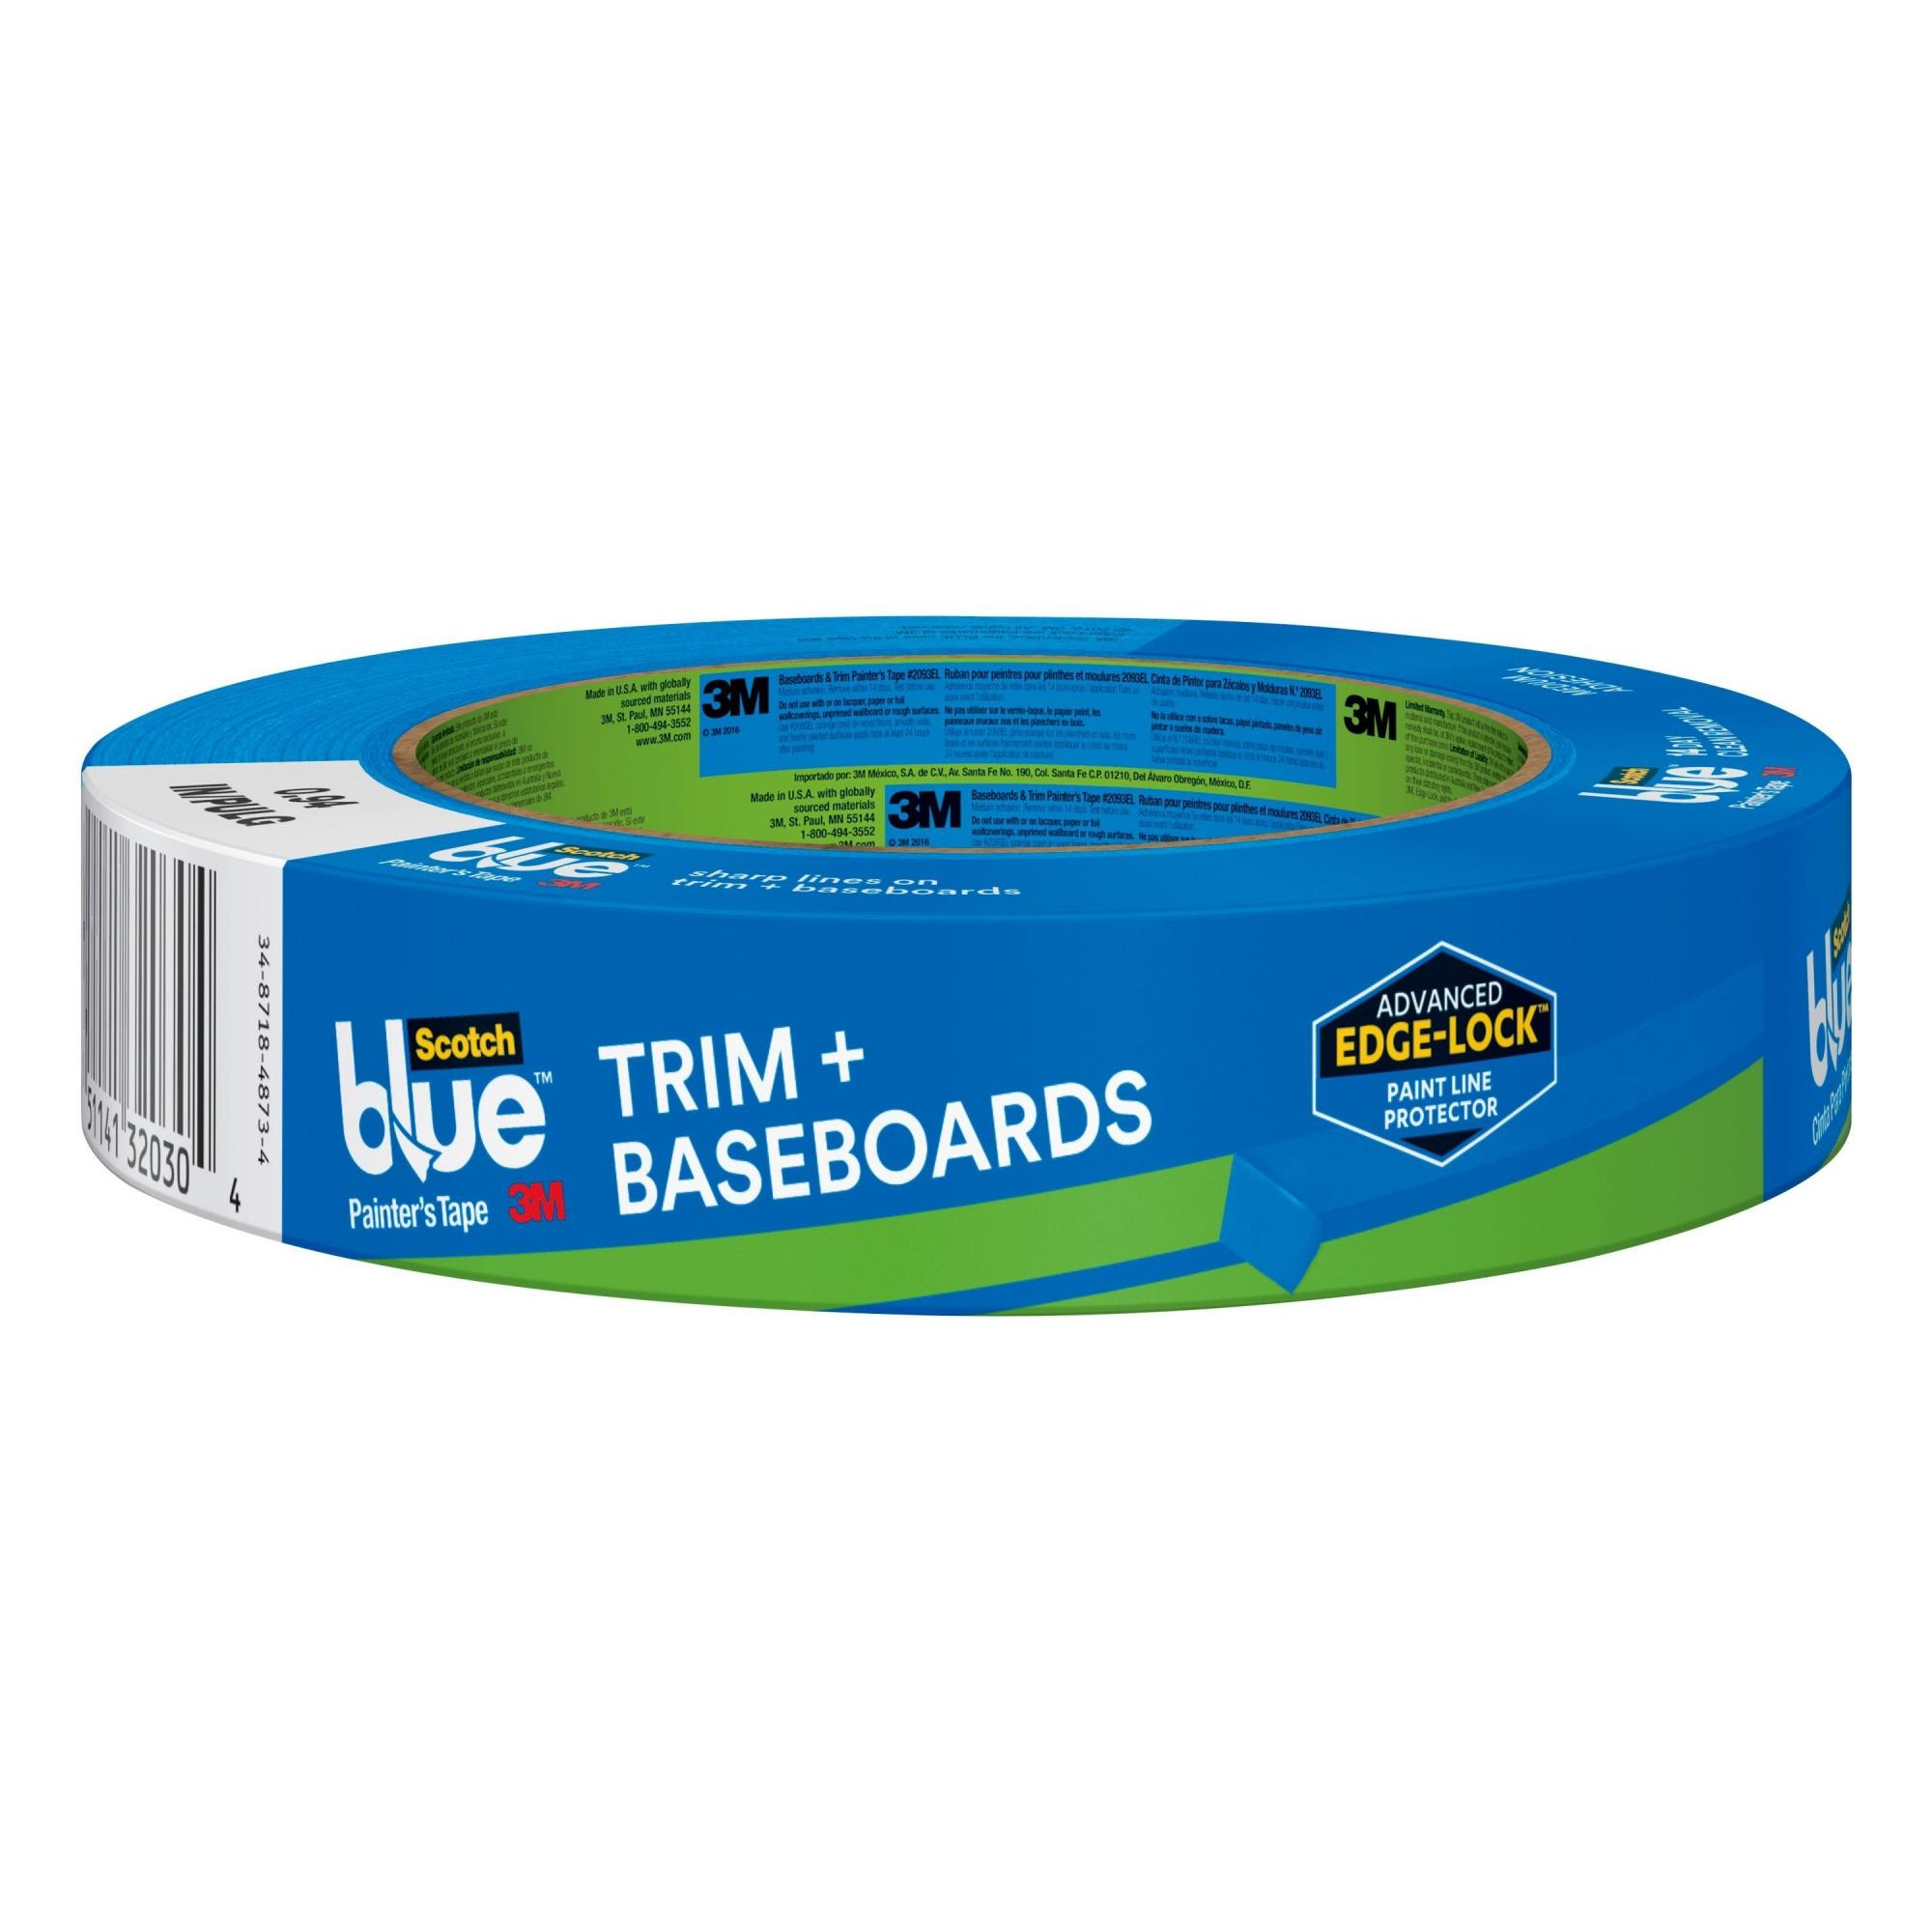 ScotchBlue Painter's Tape Trim and Baseboards with Edge-Lock, 1 Roll, 0.94' x 60 yds